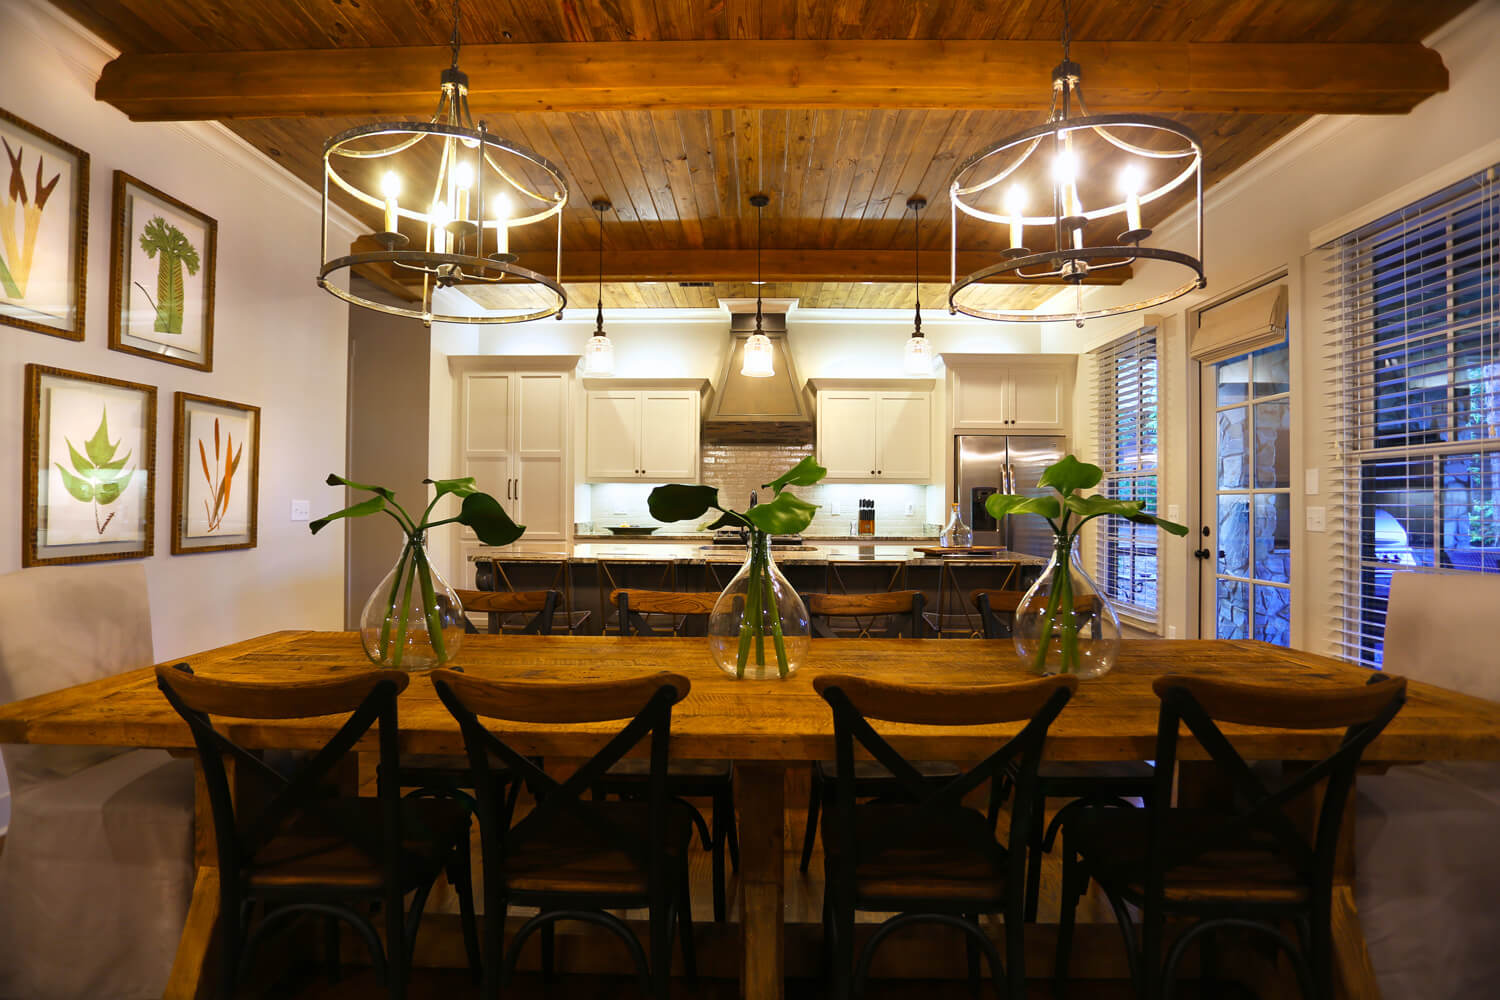 Lake Martin Cabin - Interior View of Dining Room - Designed by Foshee Architecture